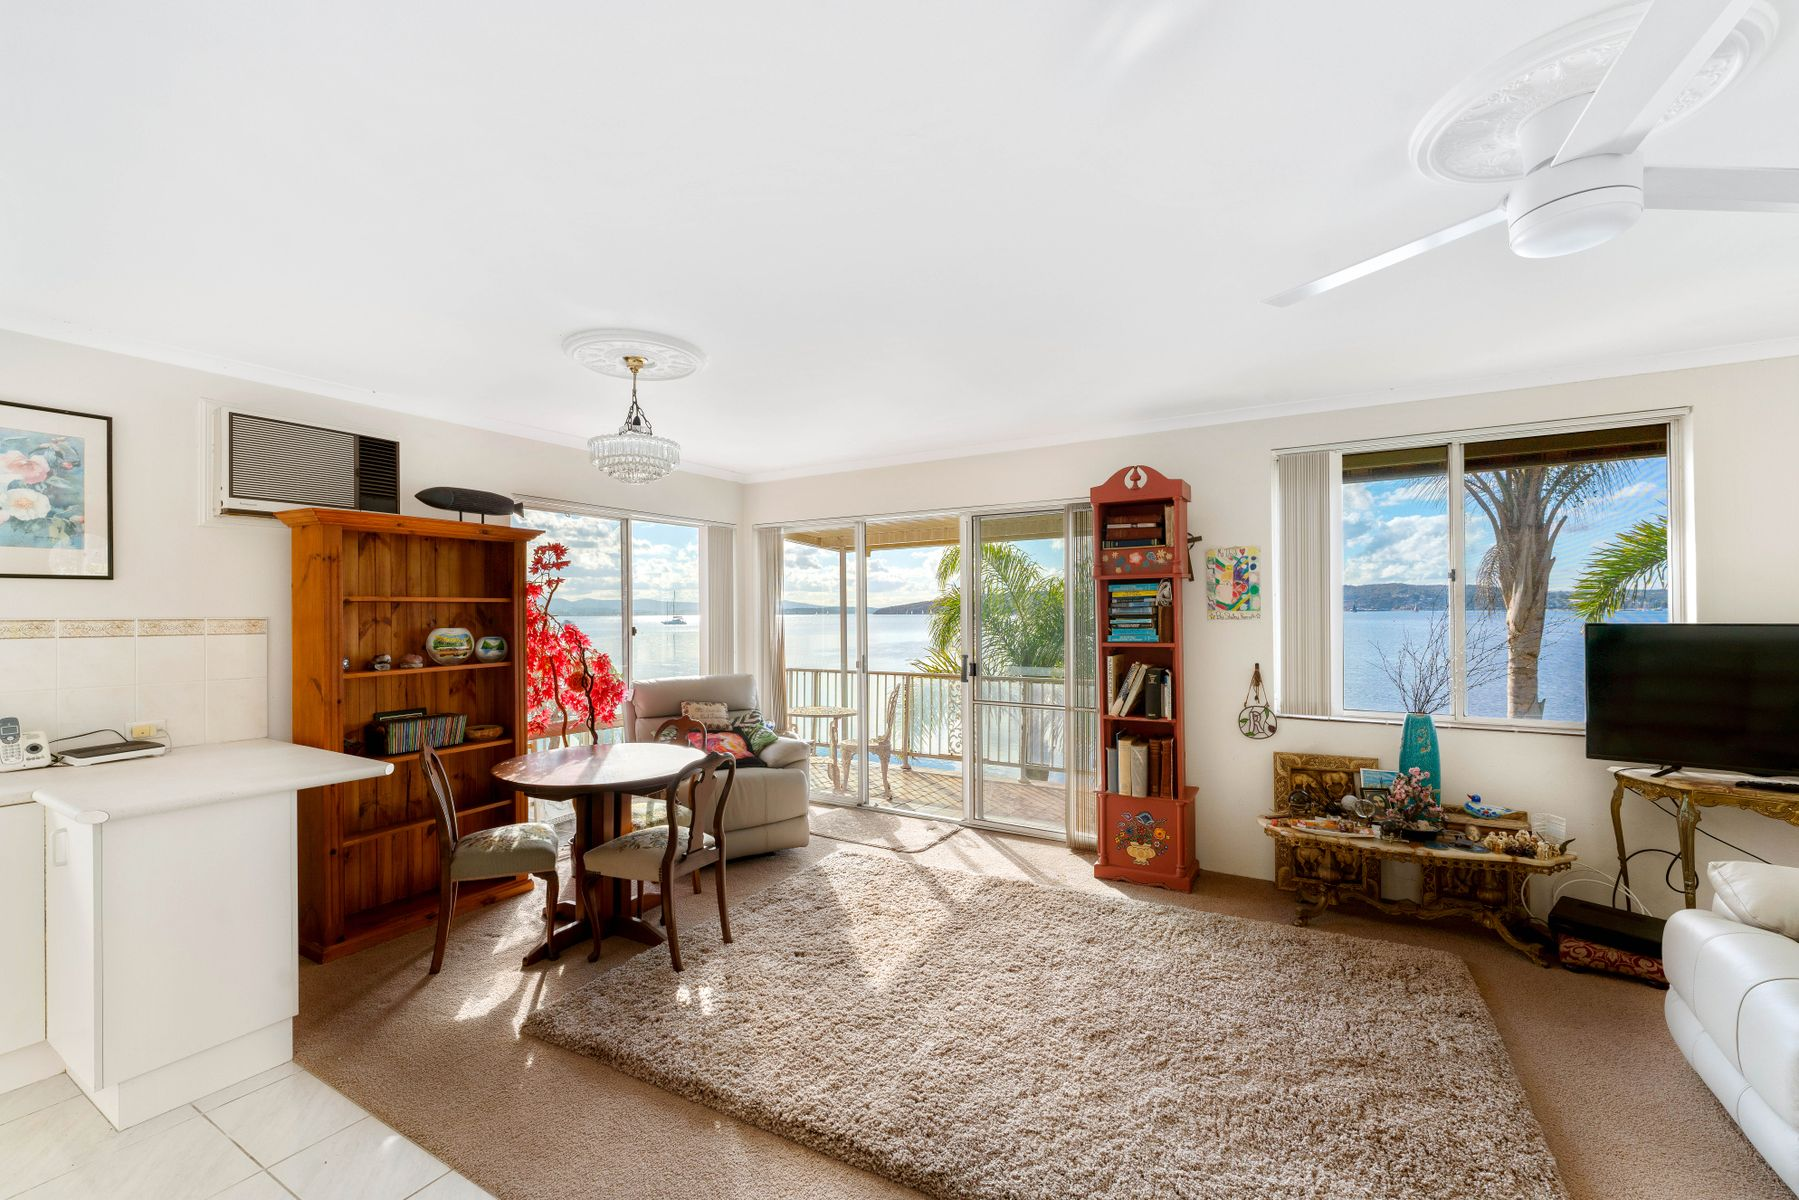 8/67 Marks Point Road, Marks Point, NSW 2280